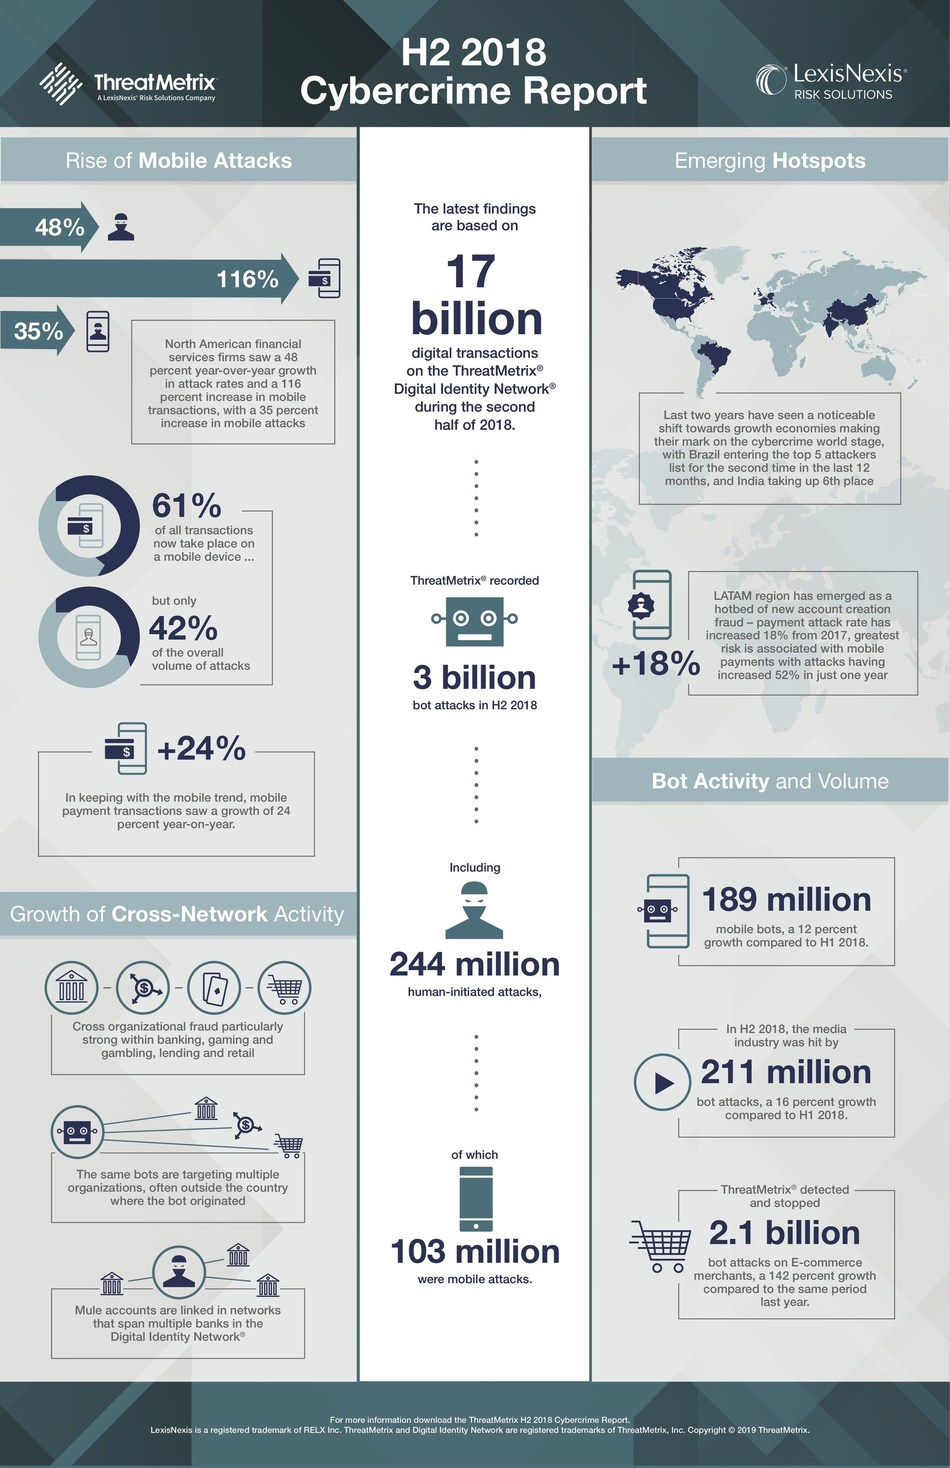 LexisNexis_Risk_Solutions___Infographic